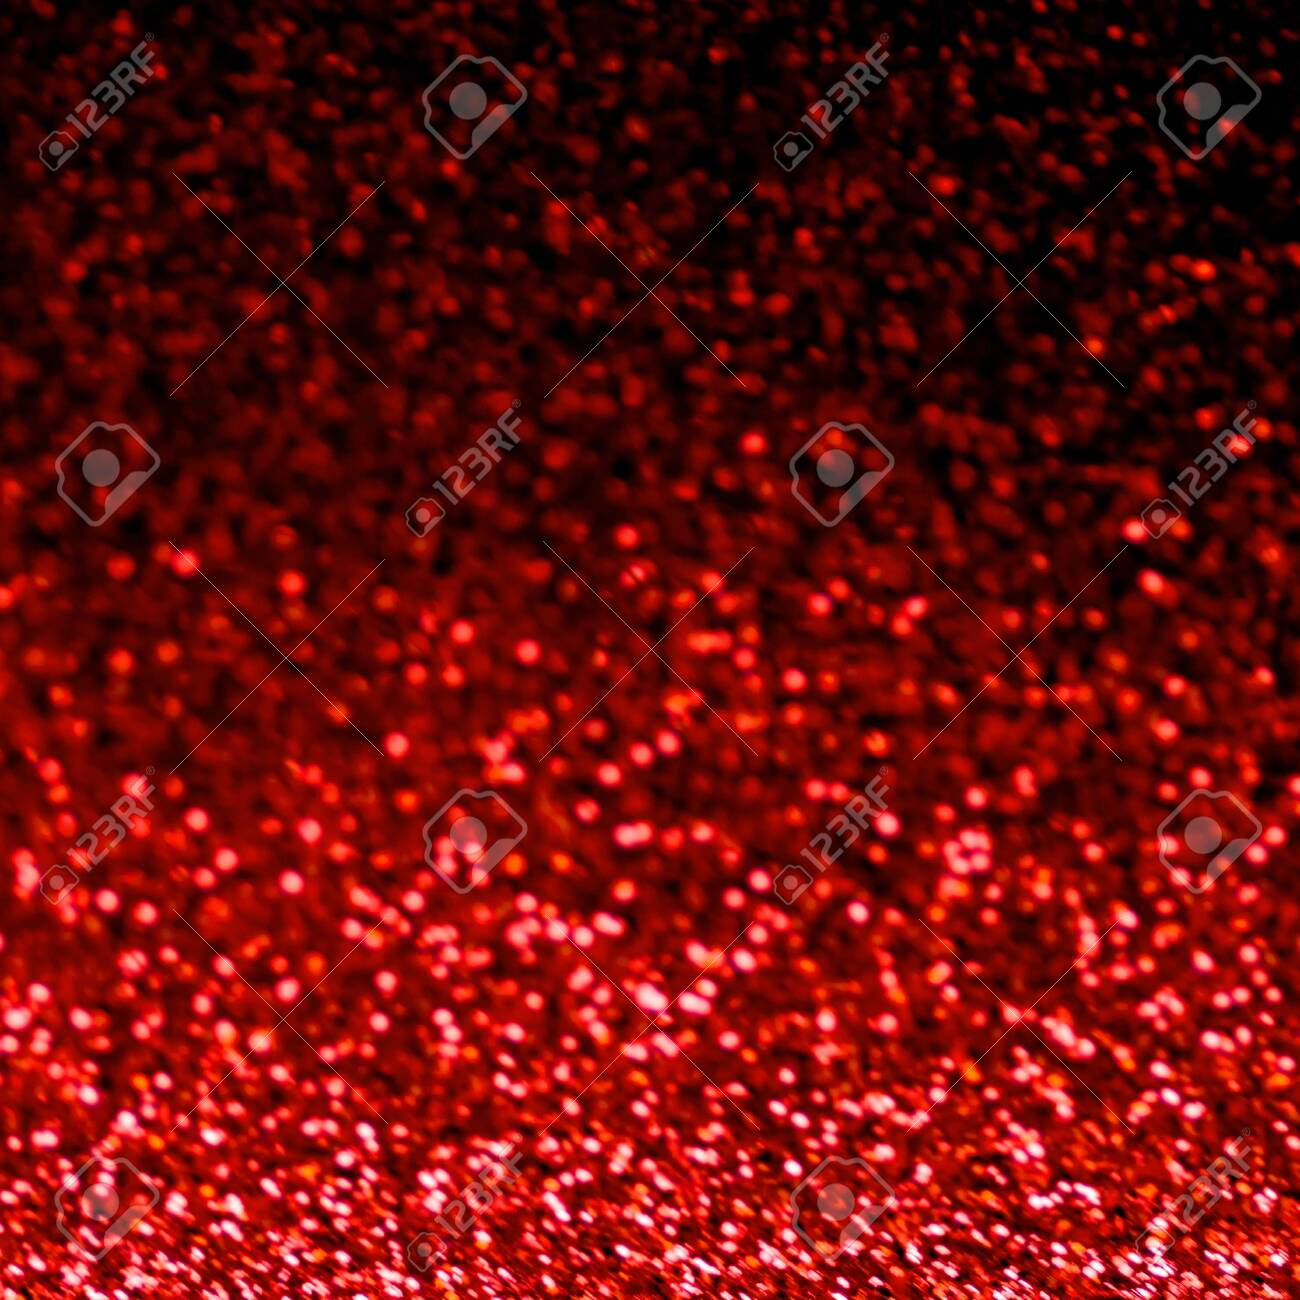 Red Sparkle Wallpaper For Valentines Day And Christmas Dark